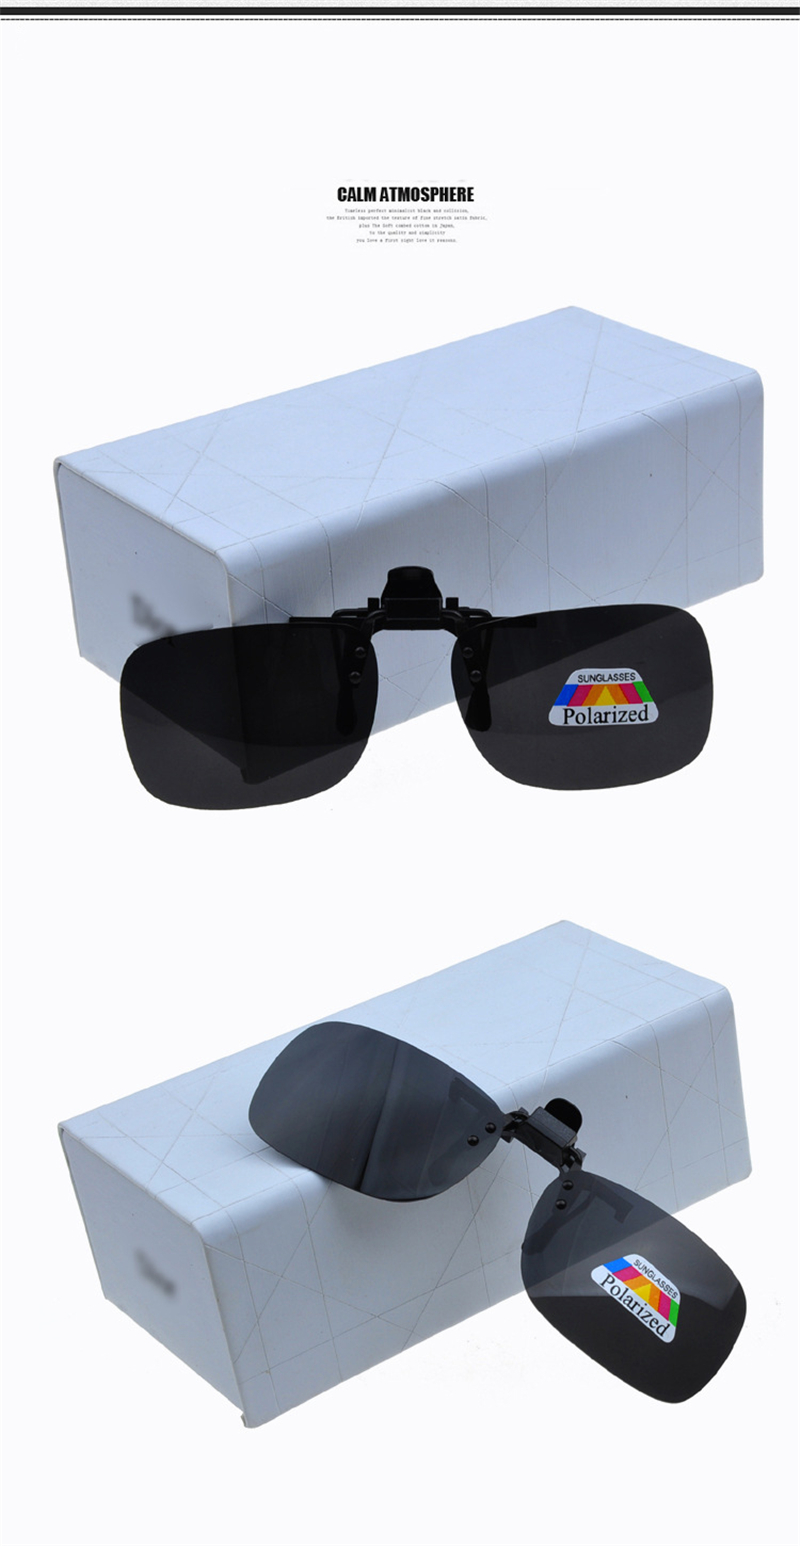 58e48afb40 Lens Color  Deep Green   Yellow   Black   Brown Lens style  Polarized Lens  Material  Polycarbonate Bridge Material  Plastic UV protection  UV 400